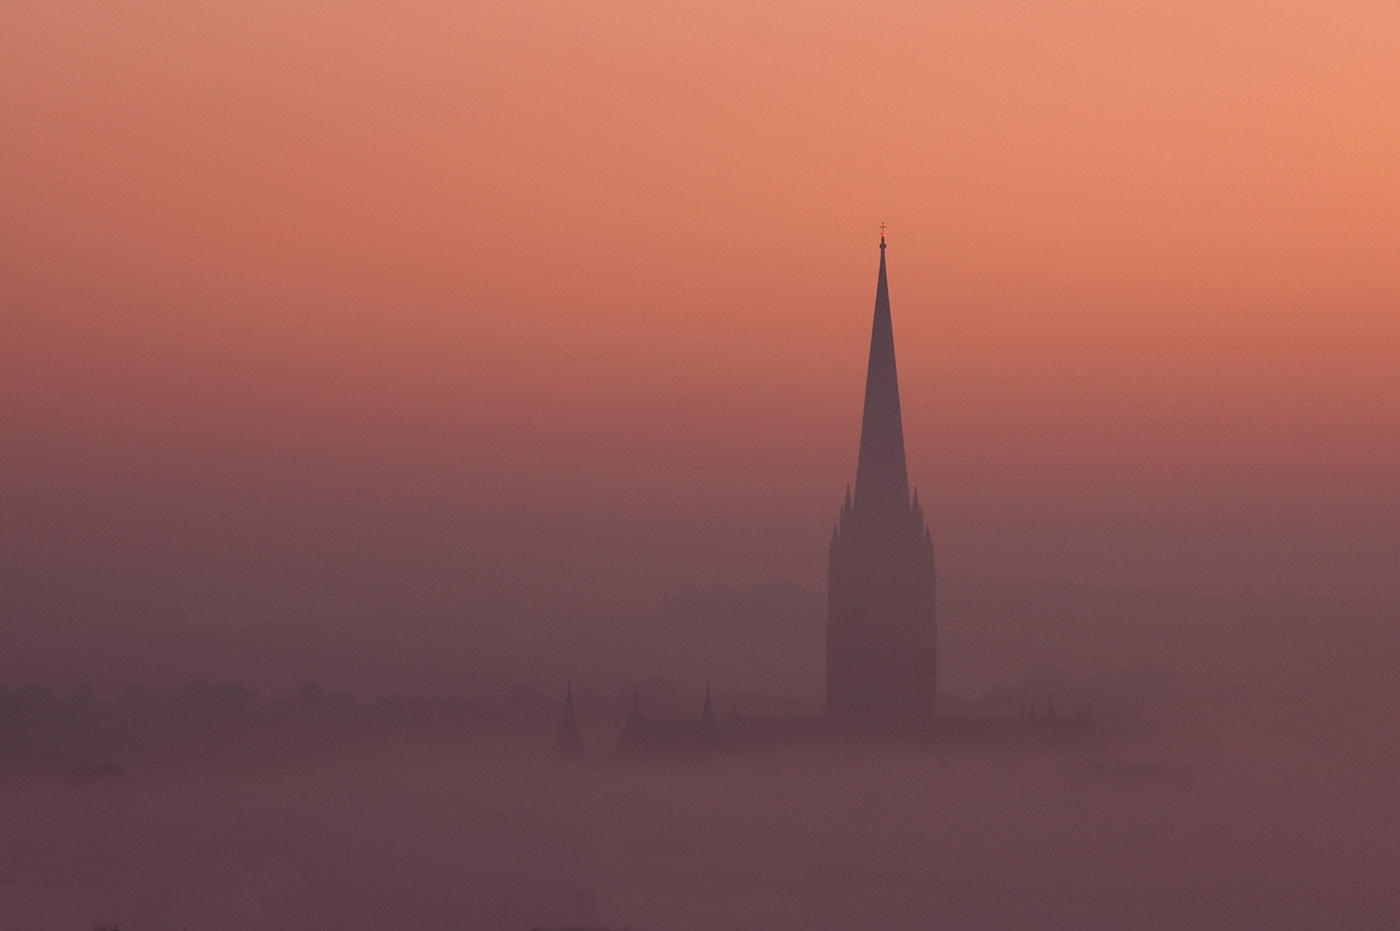 Photograph Salisbury Cathedral in the mist by Tony Oliver on 500px